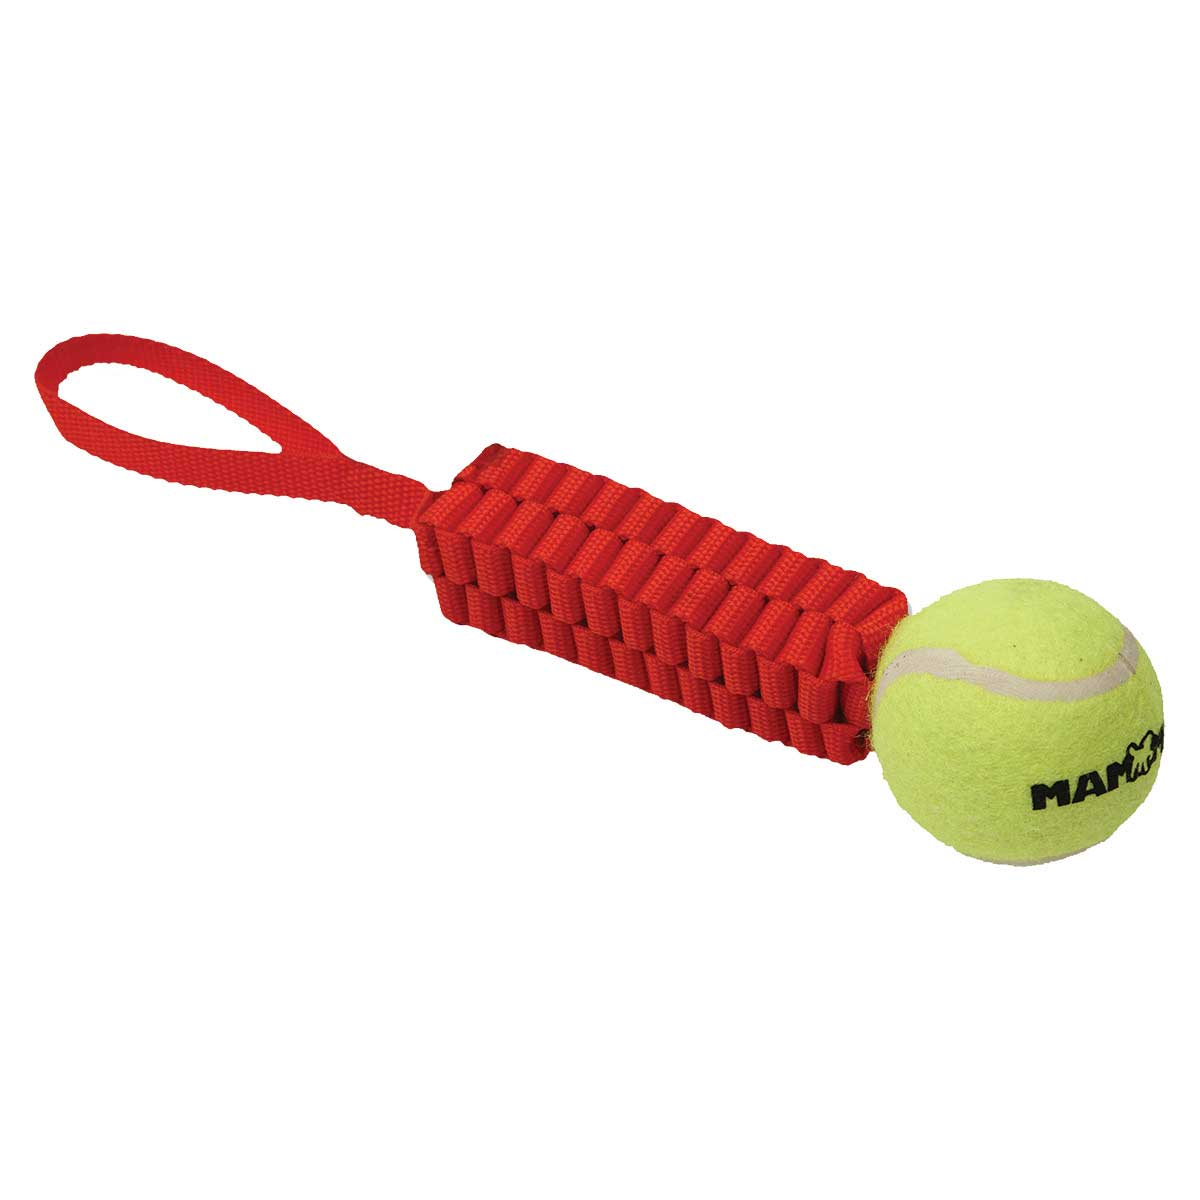 Mammoth Gnarlys with Tennis Ball Fetch Dog Toy - 11 inch